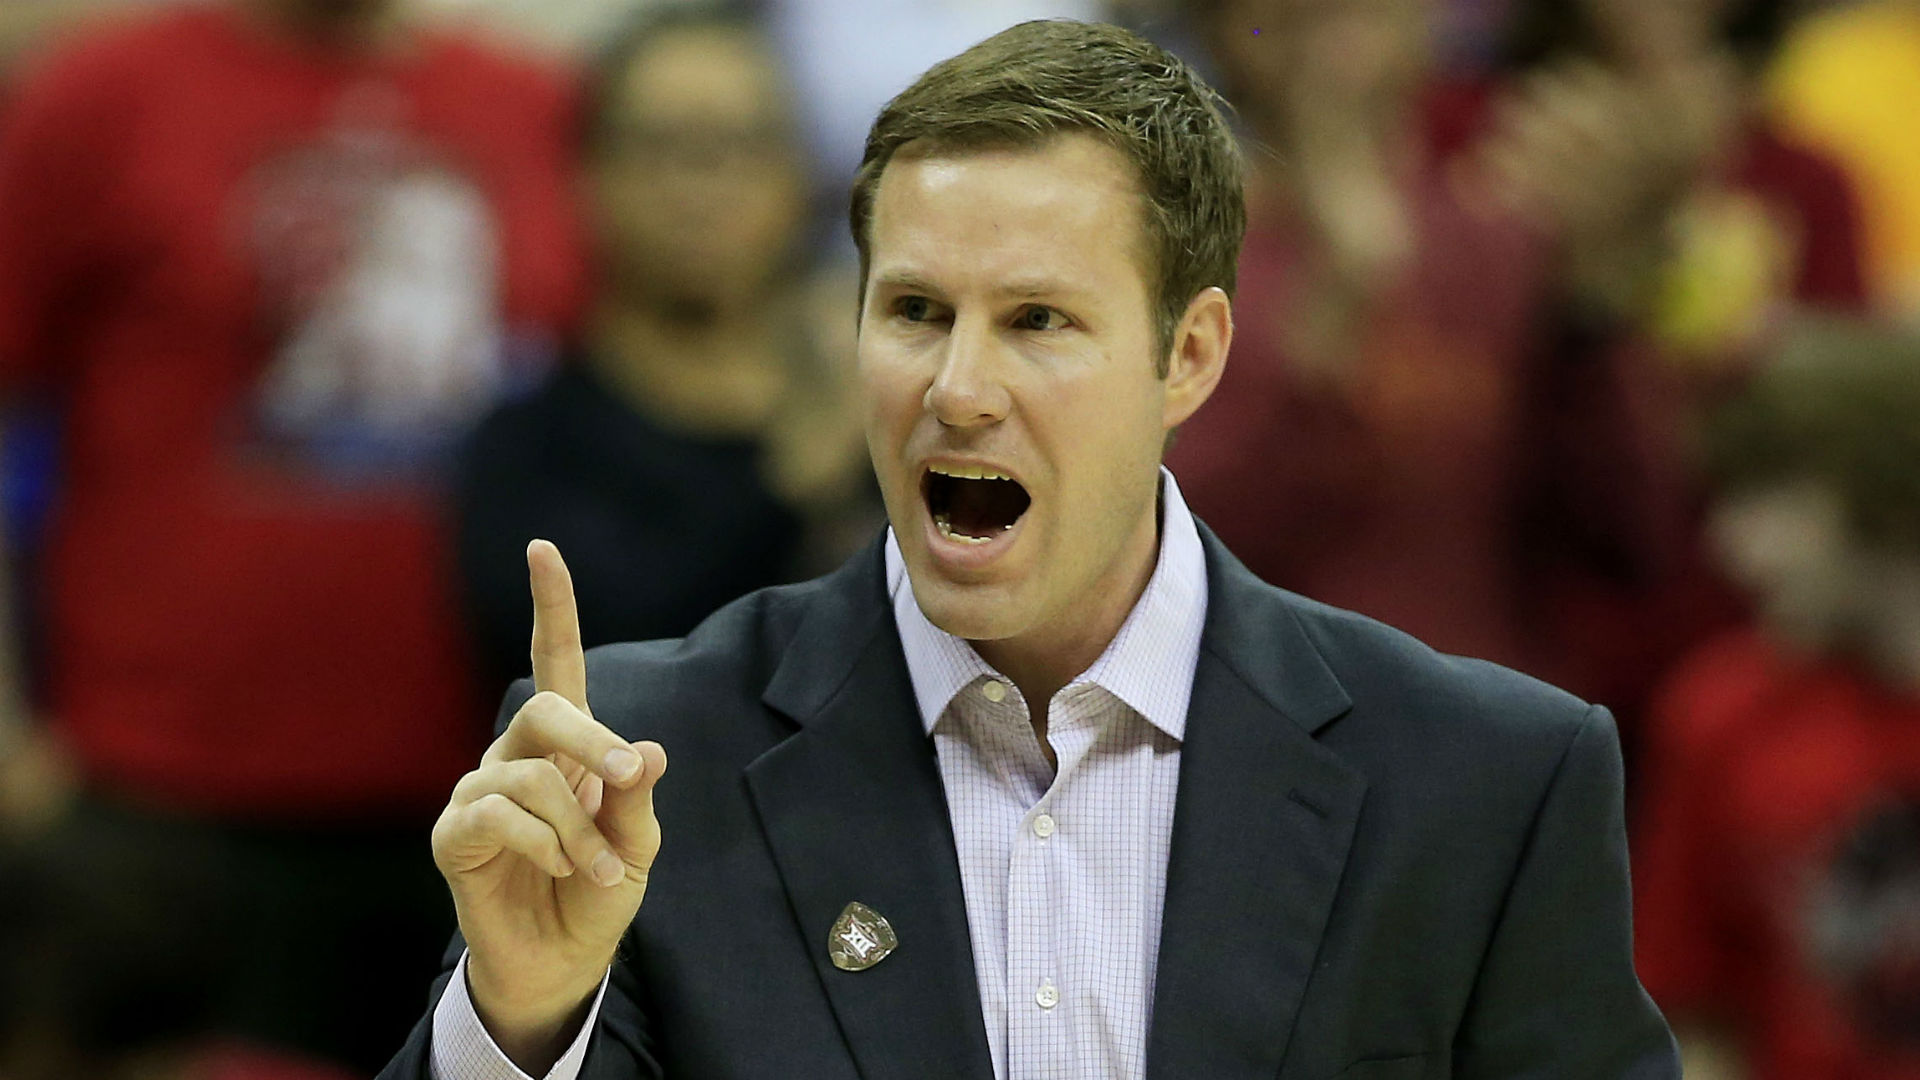 Iowa State's Fred Hoiberg undergoes successful open heart surgery